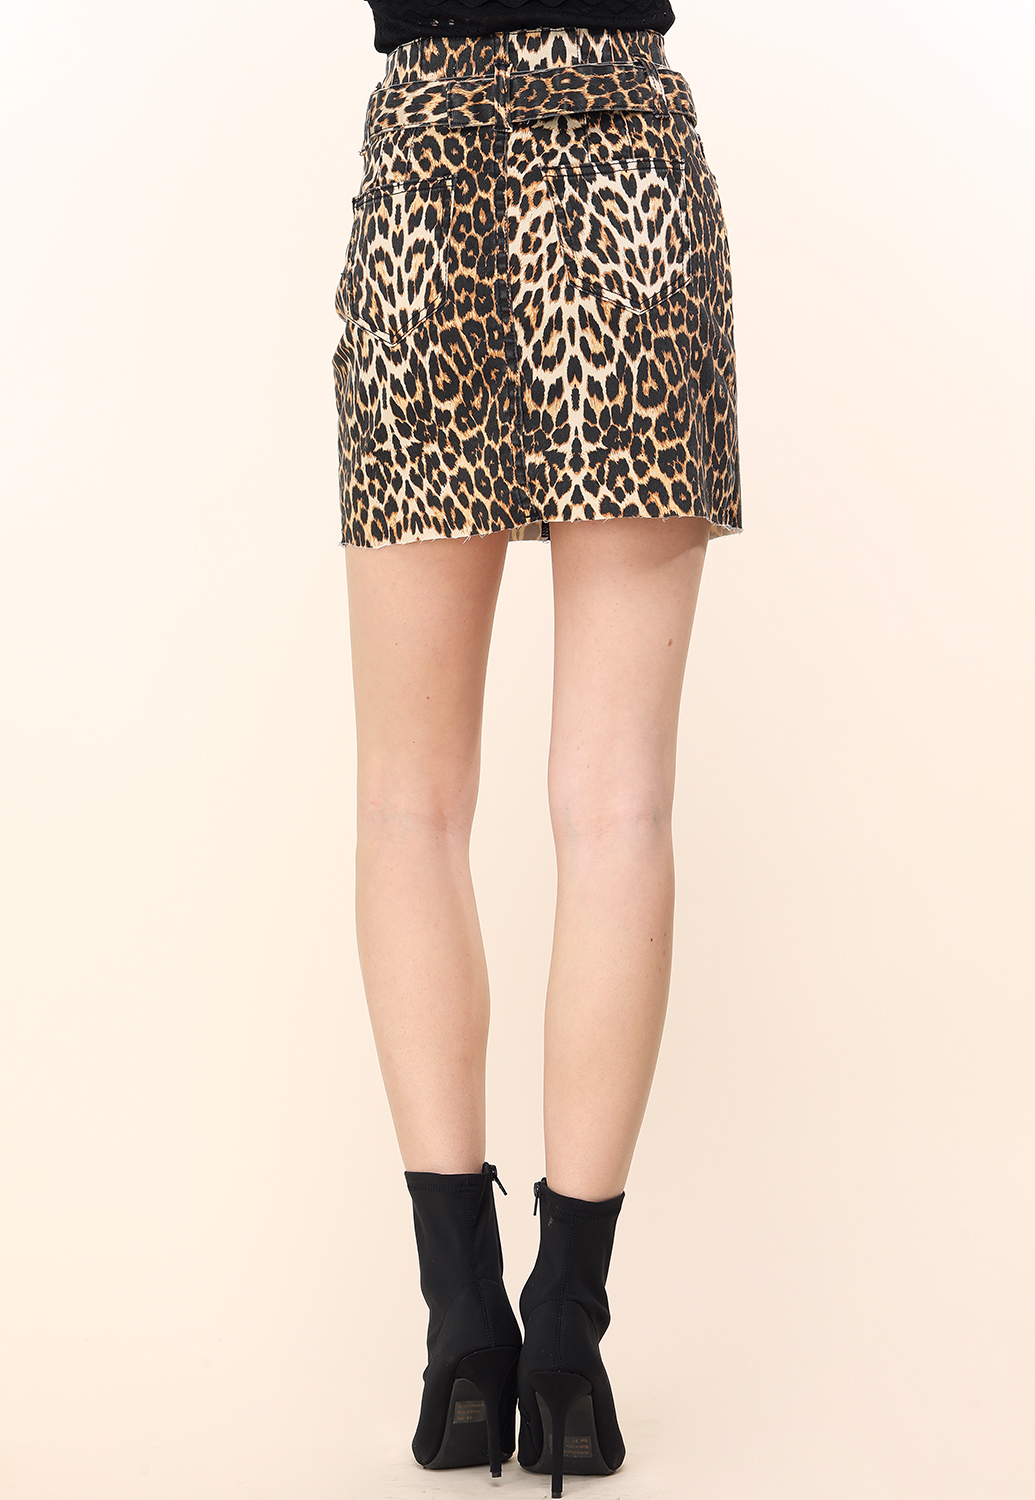 Cheetah Print Mini Skirt Shop Skirts At Papaya Clothing